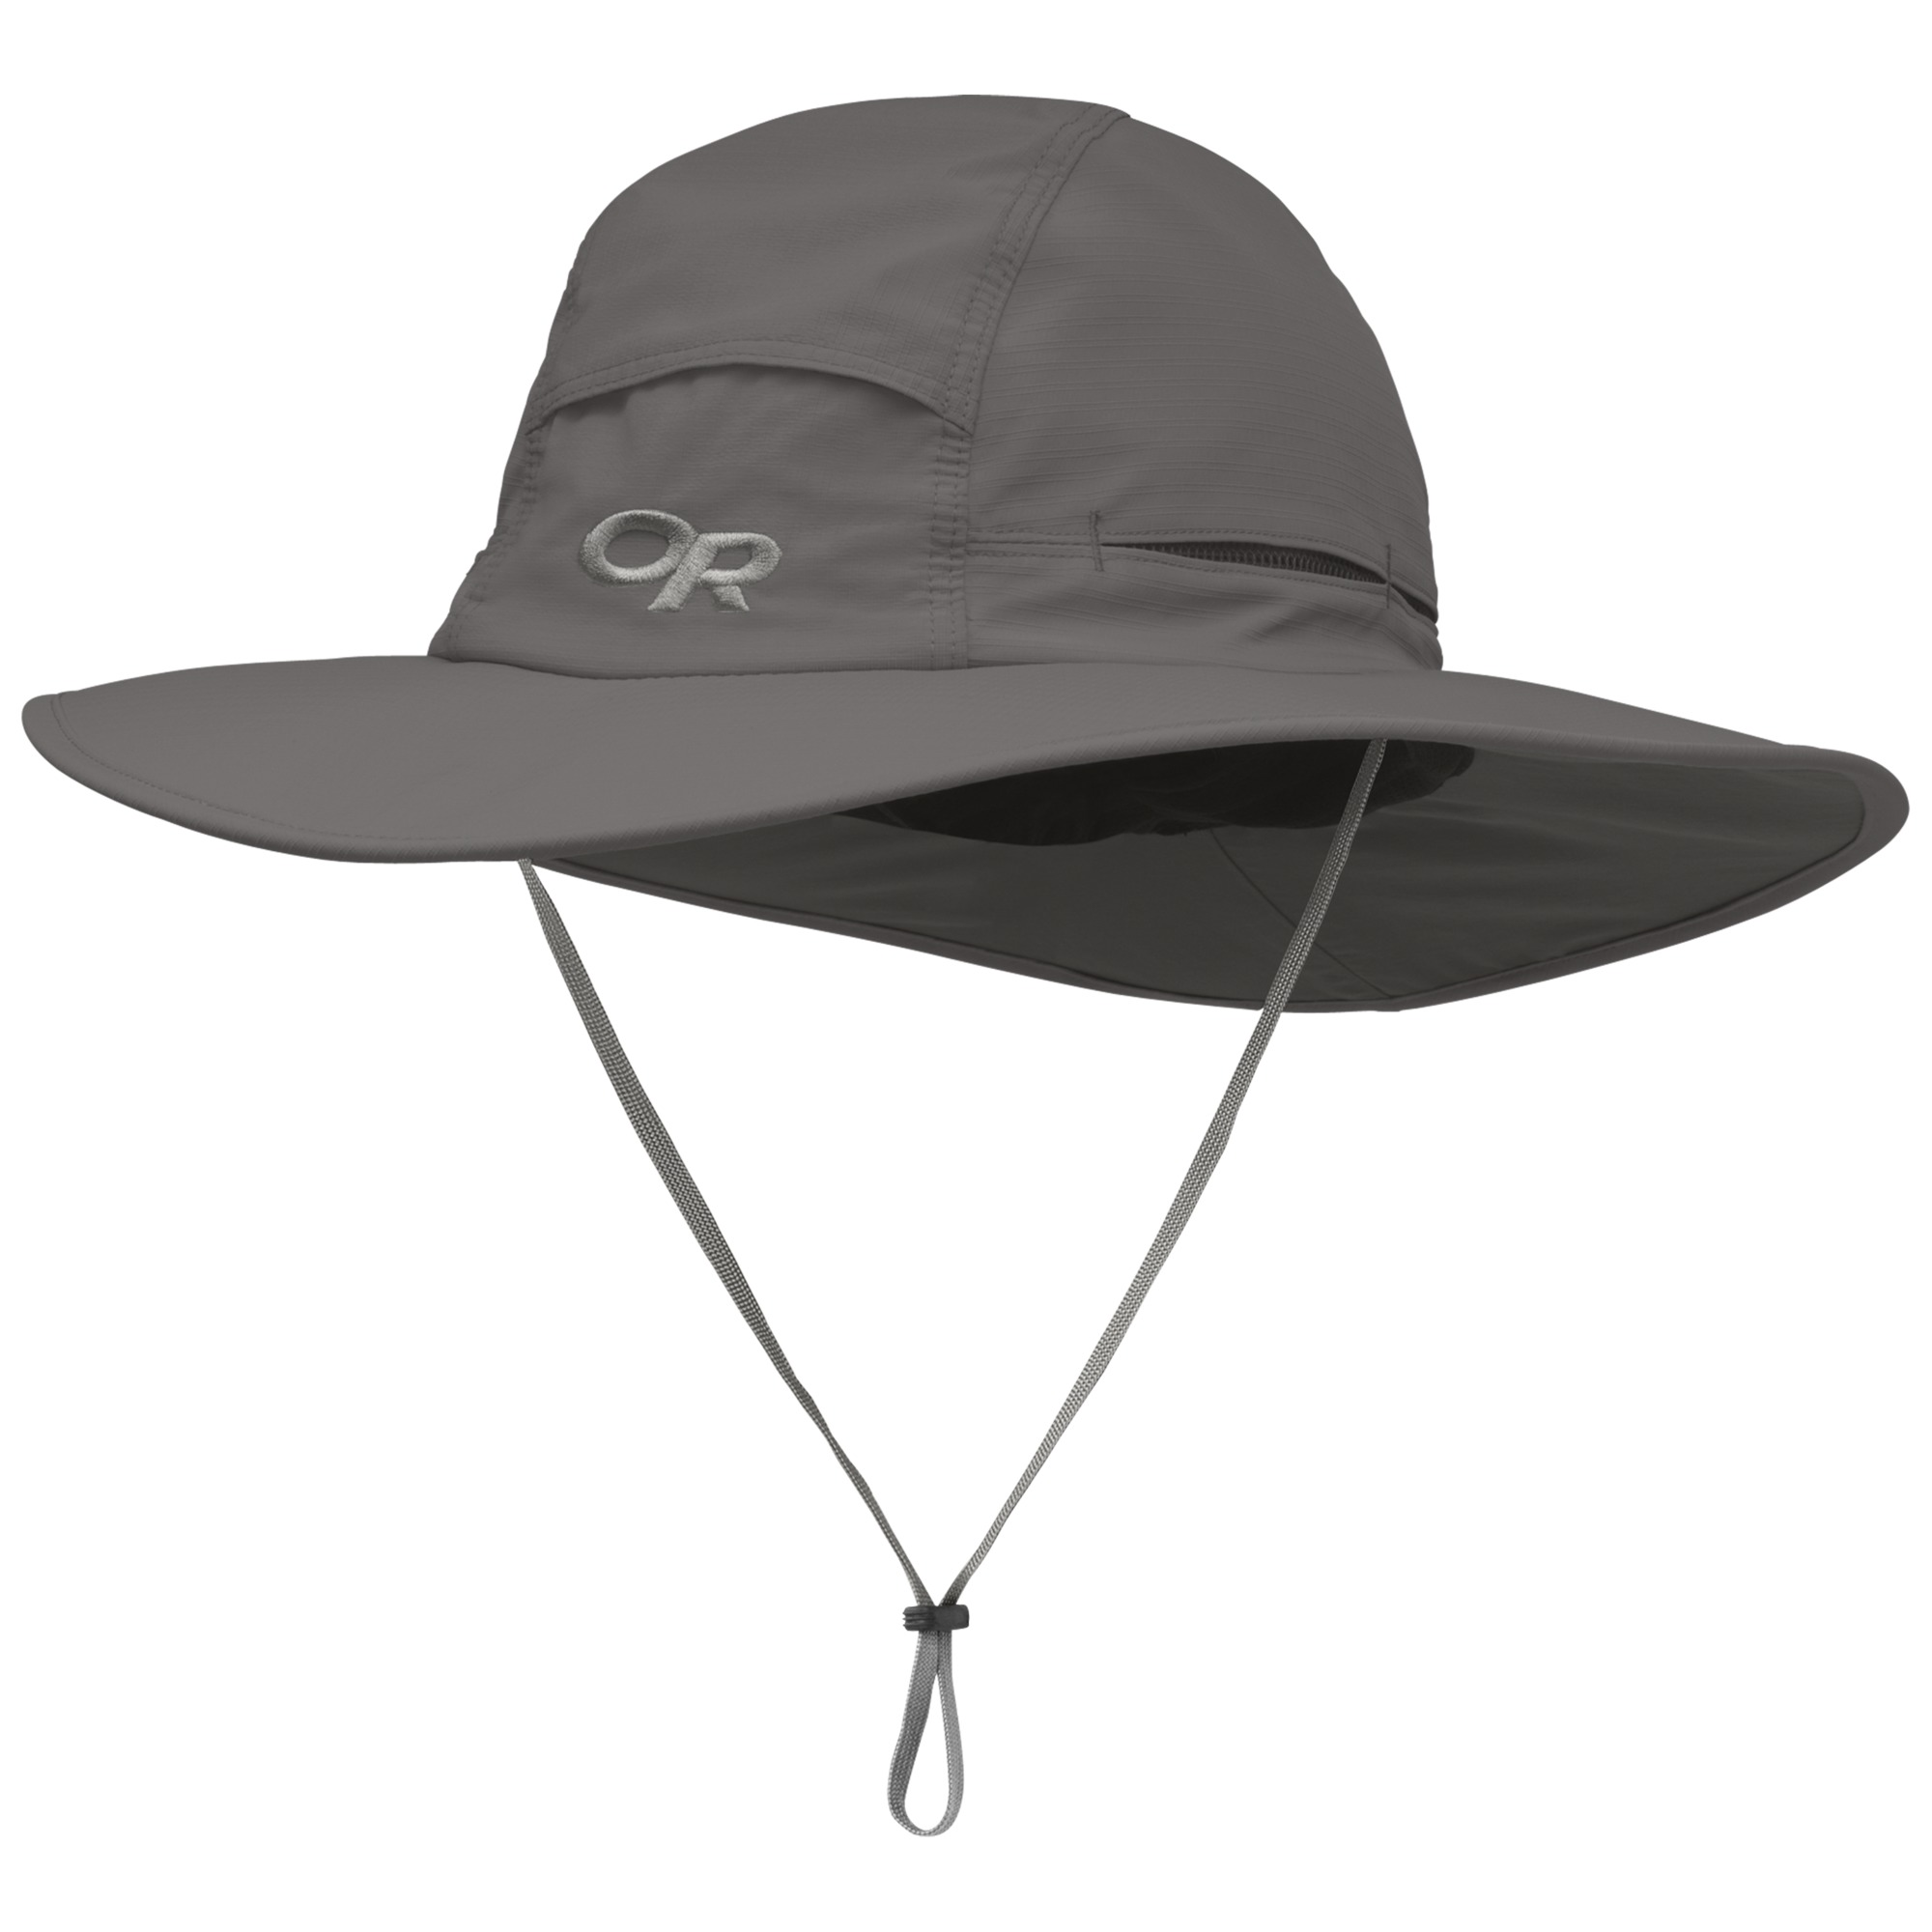 518cdc21 Sombriolet Sun Hat - pewter | Outdoor Research